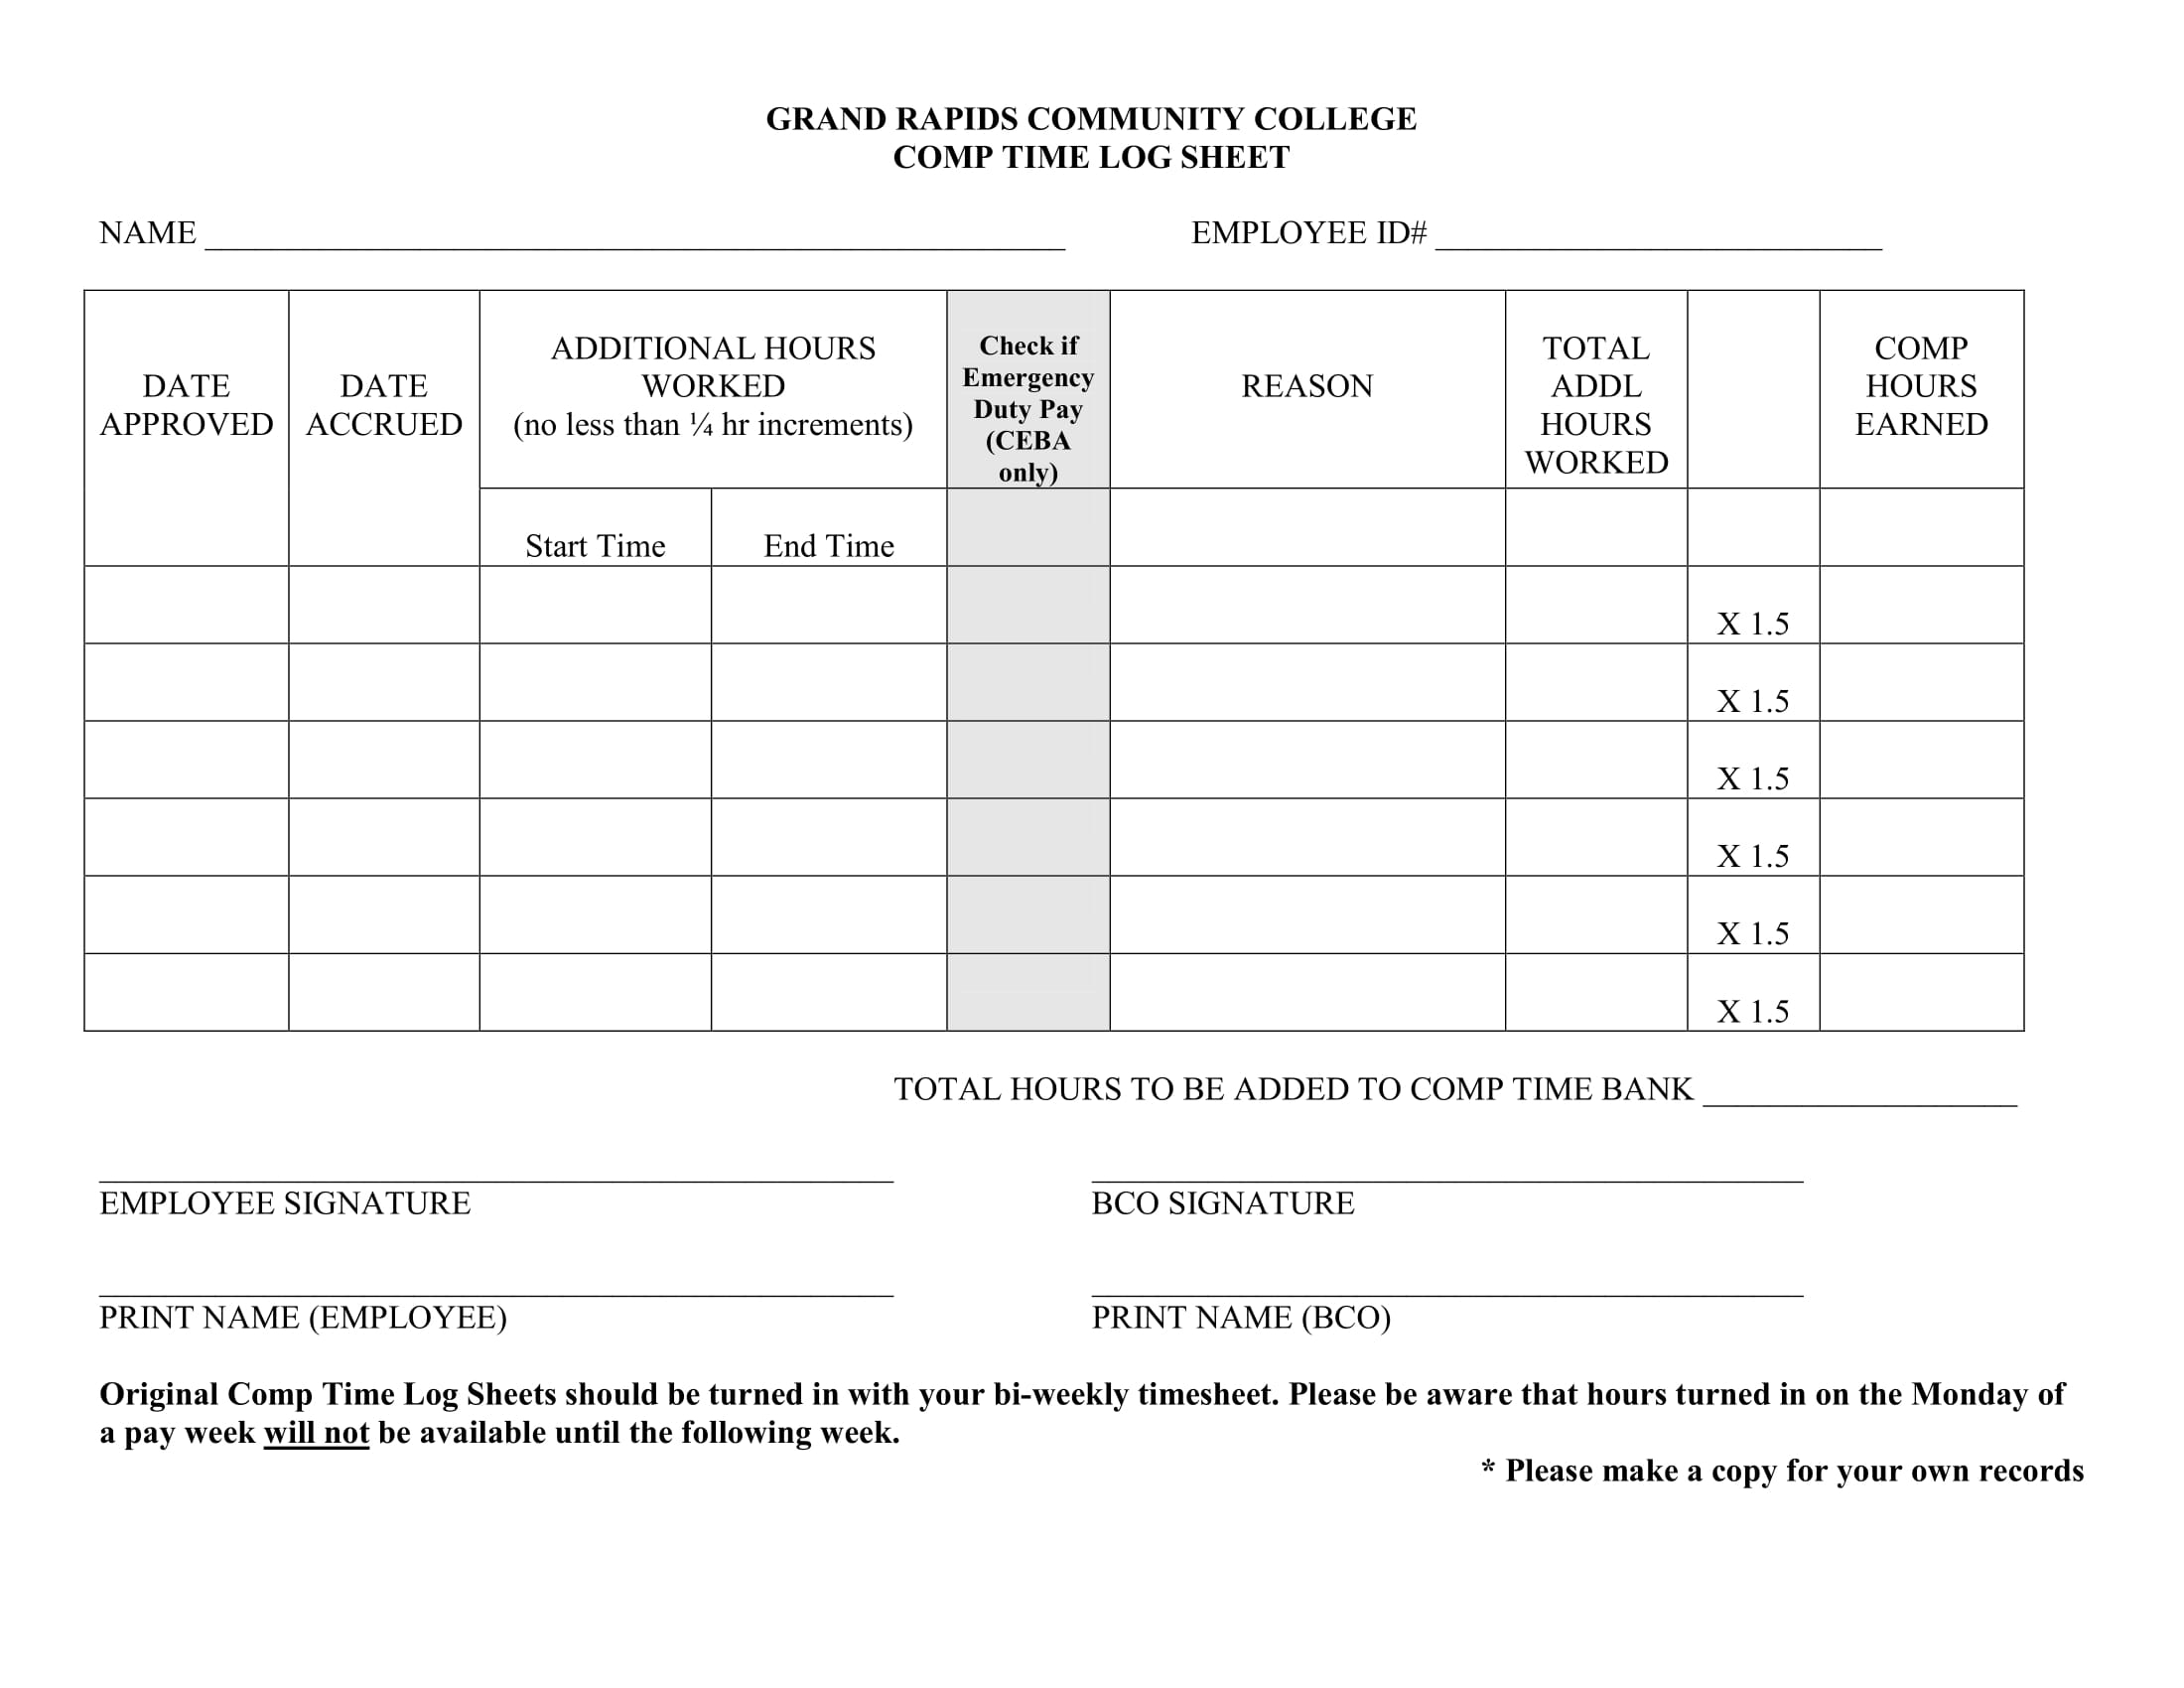 comp time log sheet example